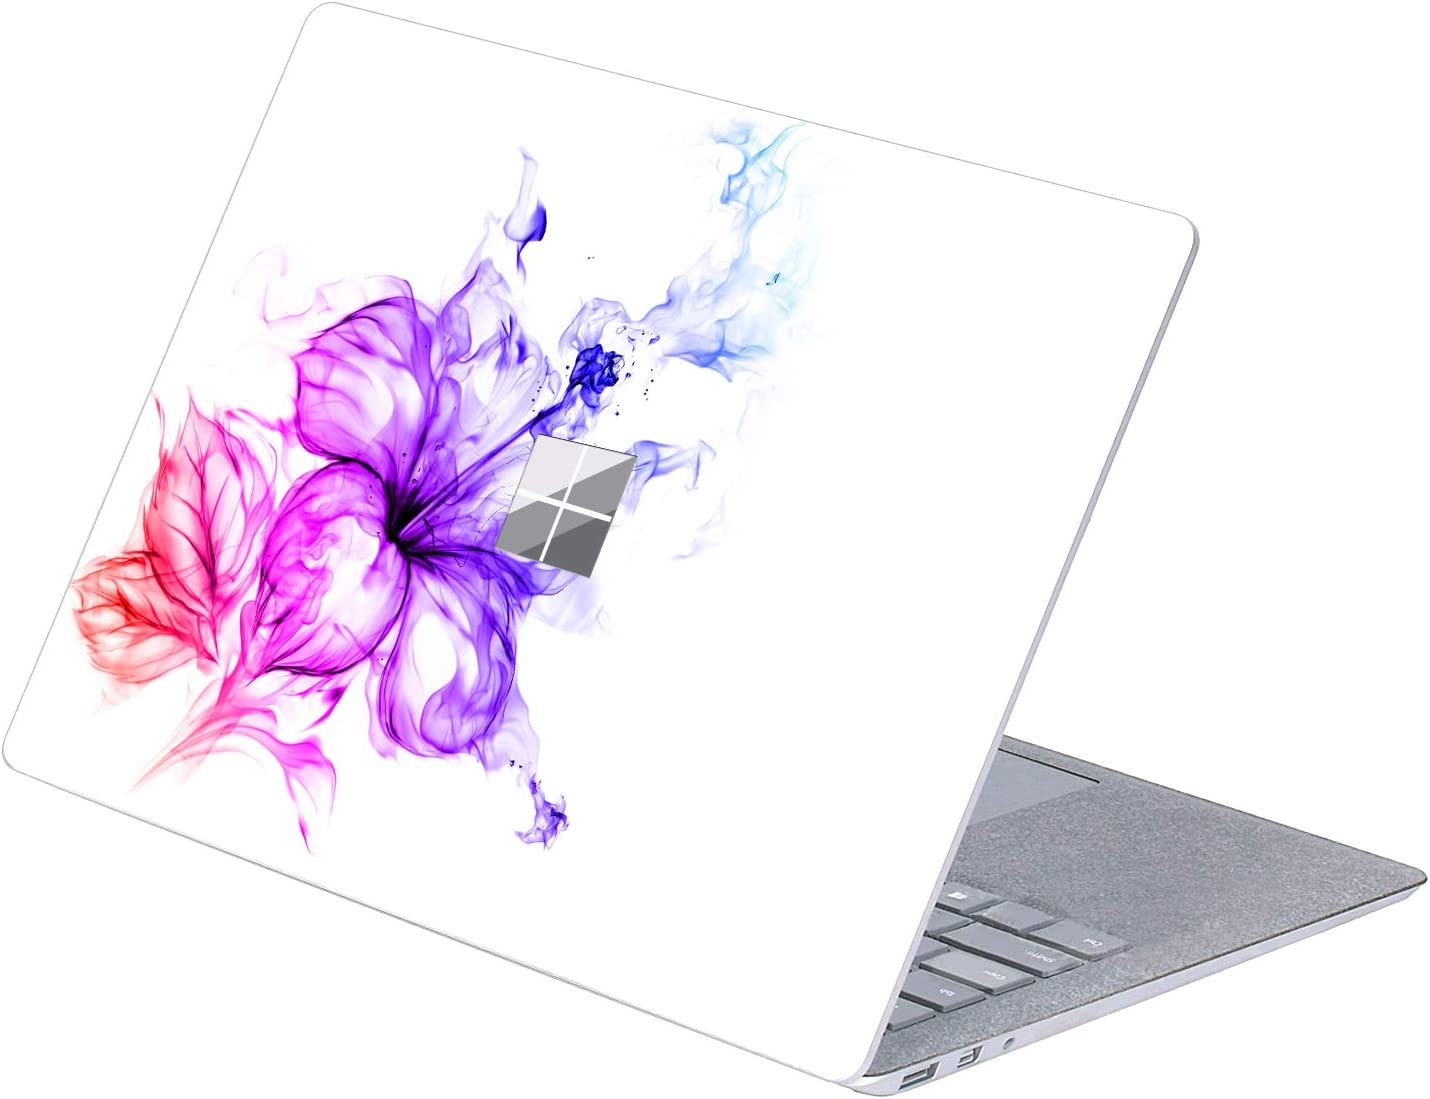 "MasiBloom Top Side Laptop Sticker Decal for 13"" 13.5 inch Microsoft Surface Laptop 3 & 2 & 1 (2019/18/17 Released) Anti Scratch Protective Skin, Not Compatible with Surface Book (Lily- Multicolor)"